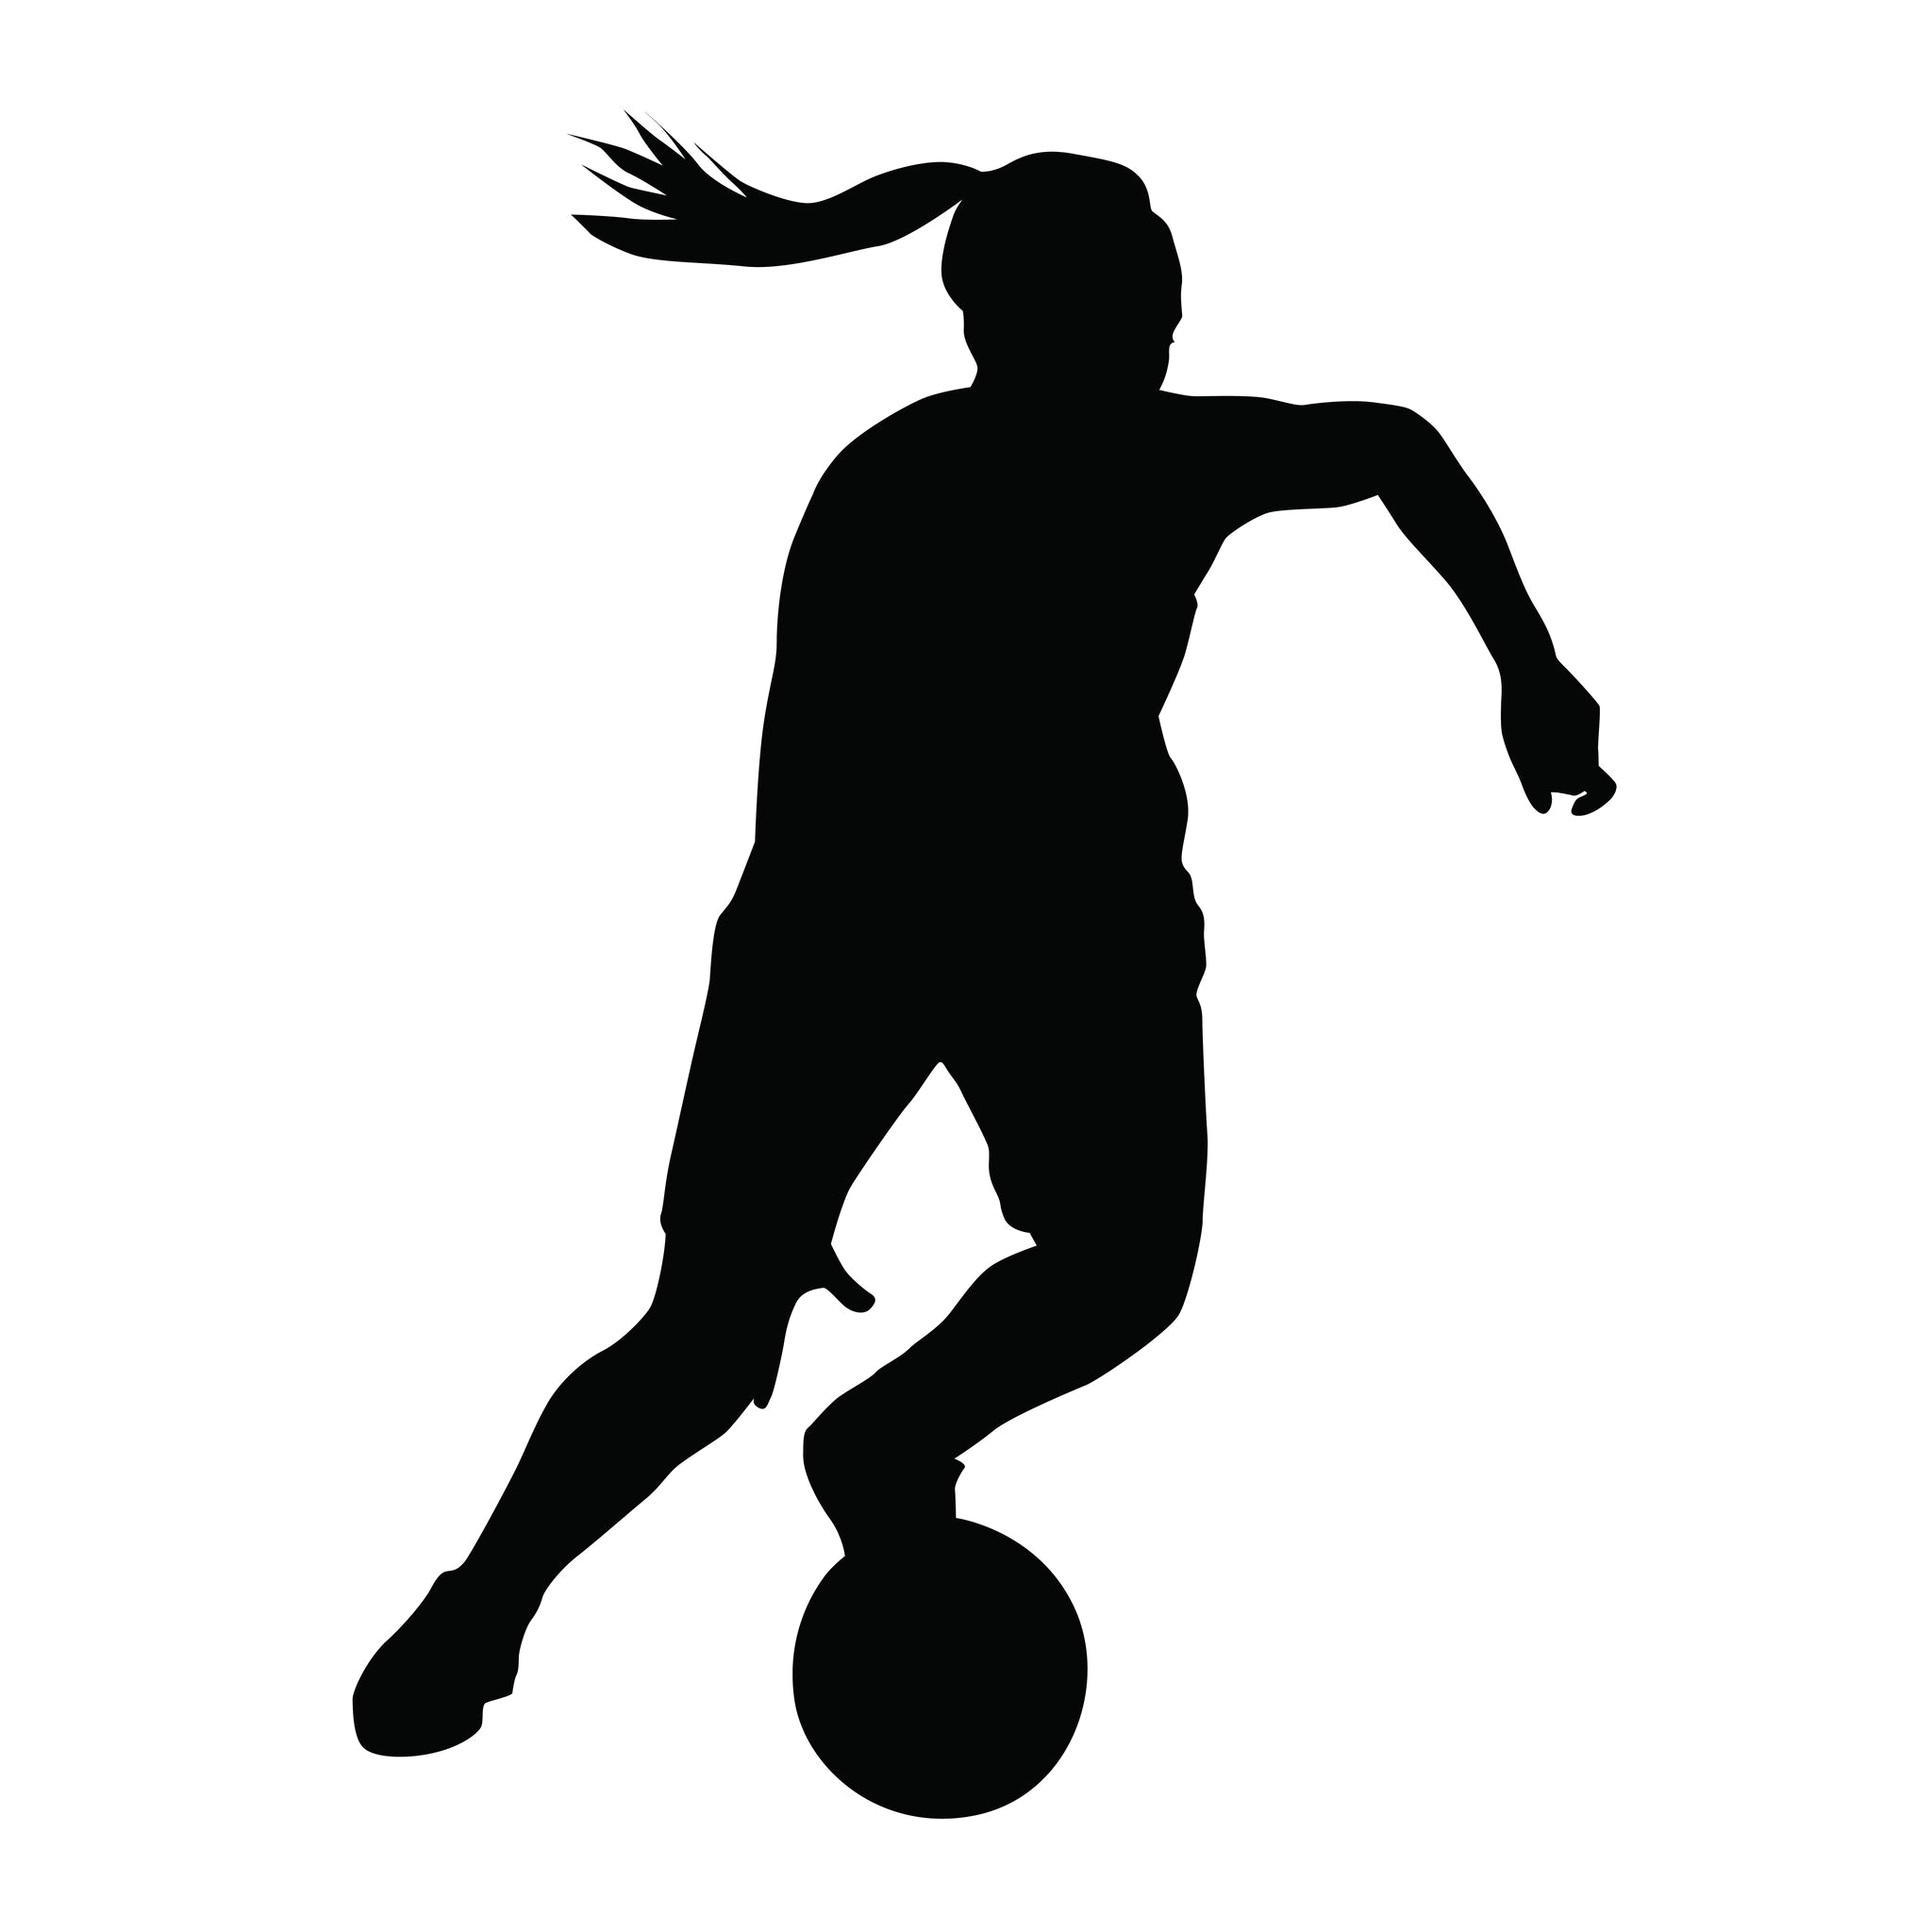 Girls soccer silhouette at. Top drawing football picture library